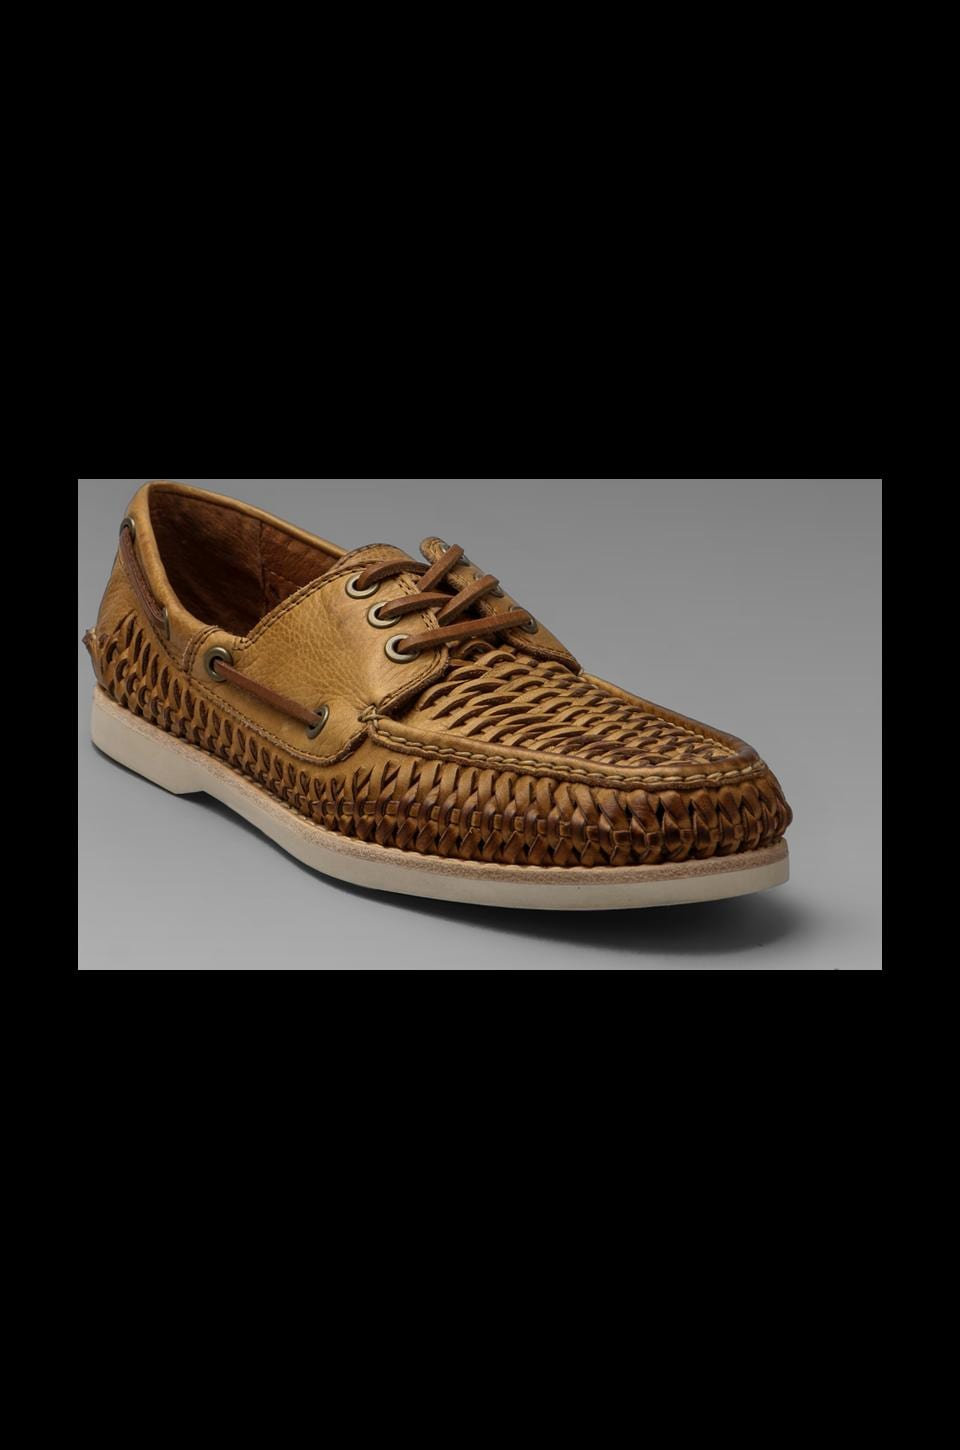 Frye Sully Woven Boat Shoe in Tan